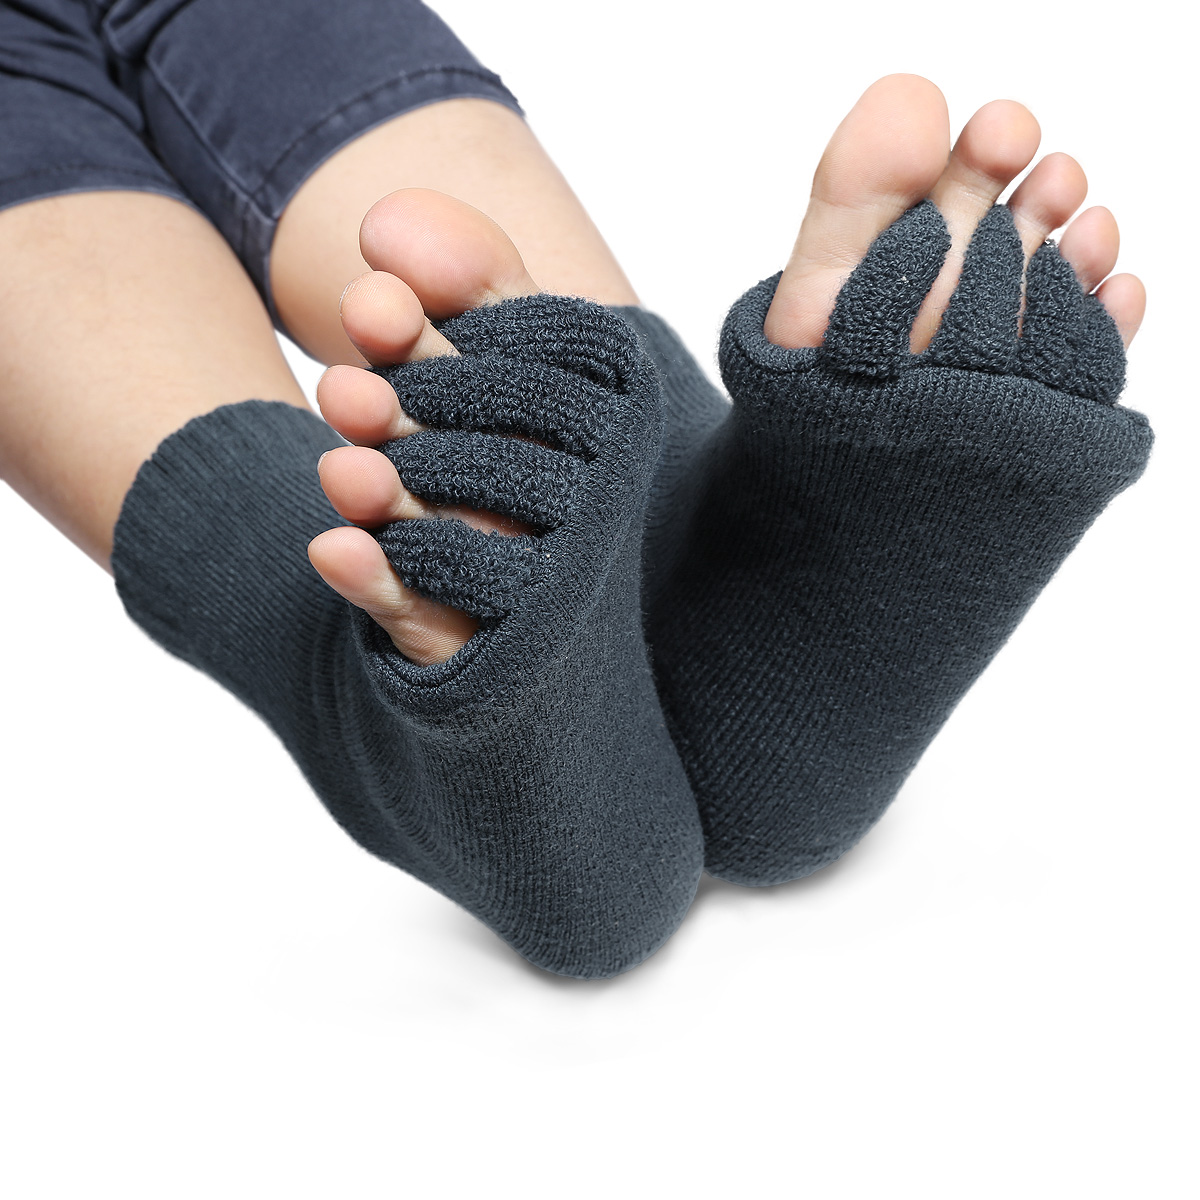 Yoga Shoes For Bunions: 1 Pair Relief Pain Blood Circulation Massage Half Toe